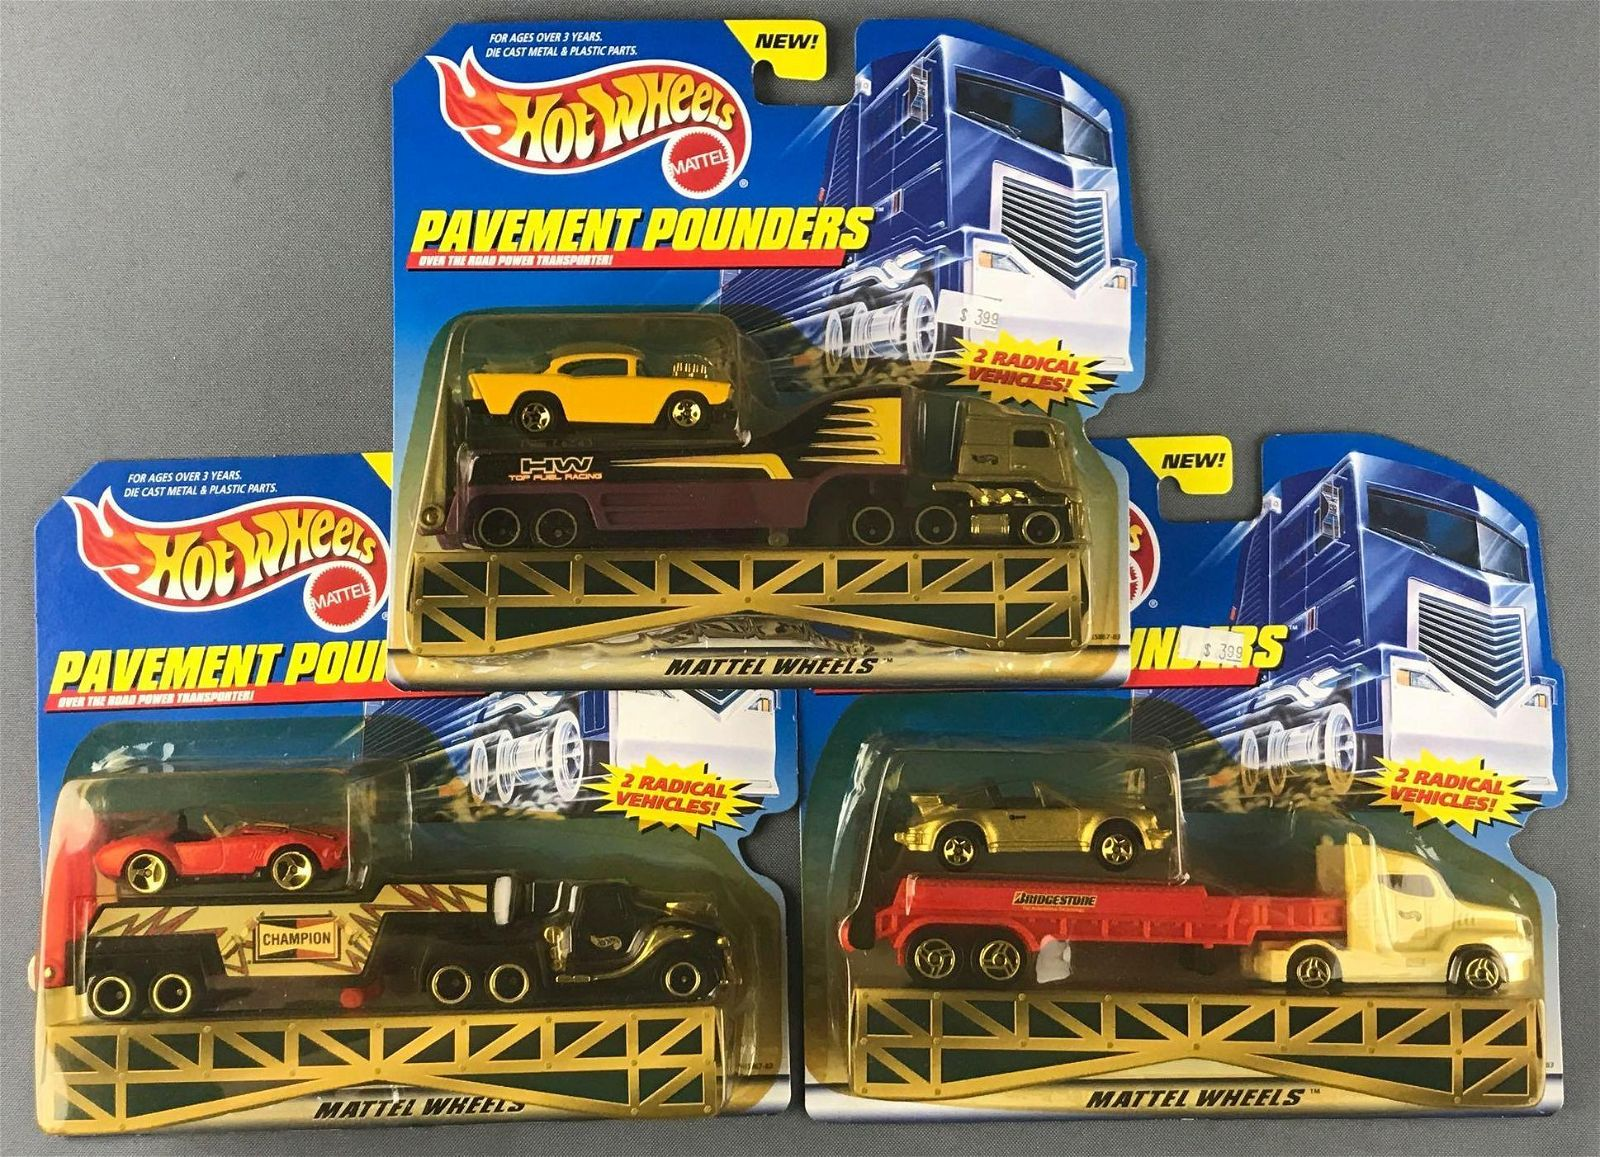 Group of 3 Hot Wheels Pavement Pounders vehicle sets